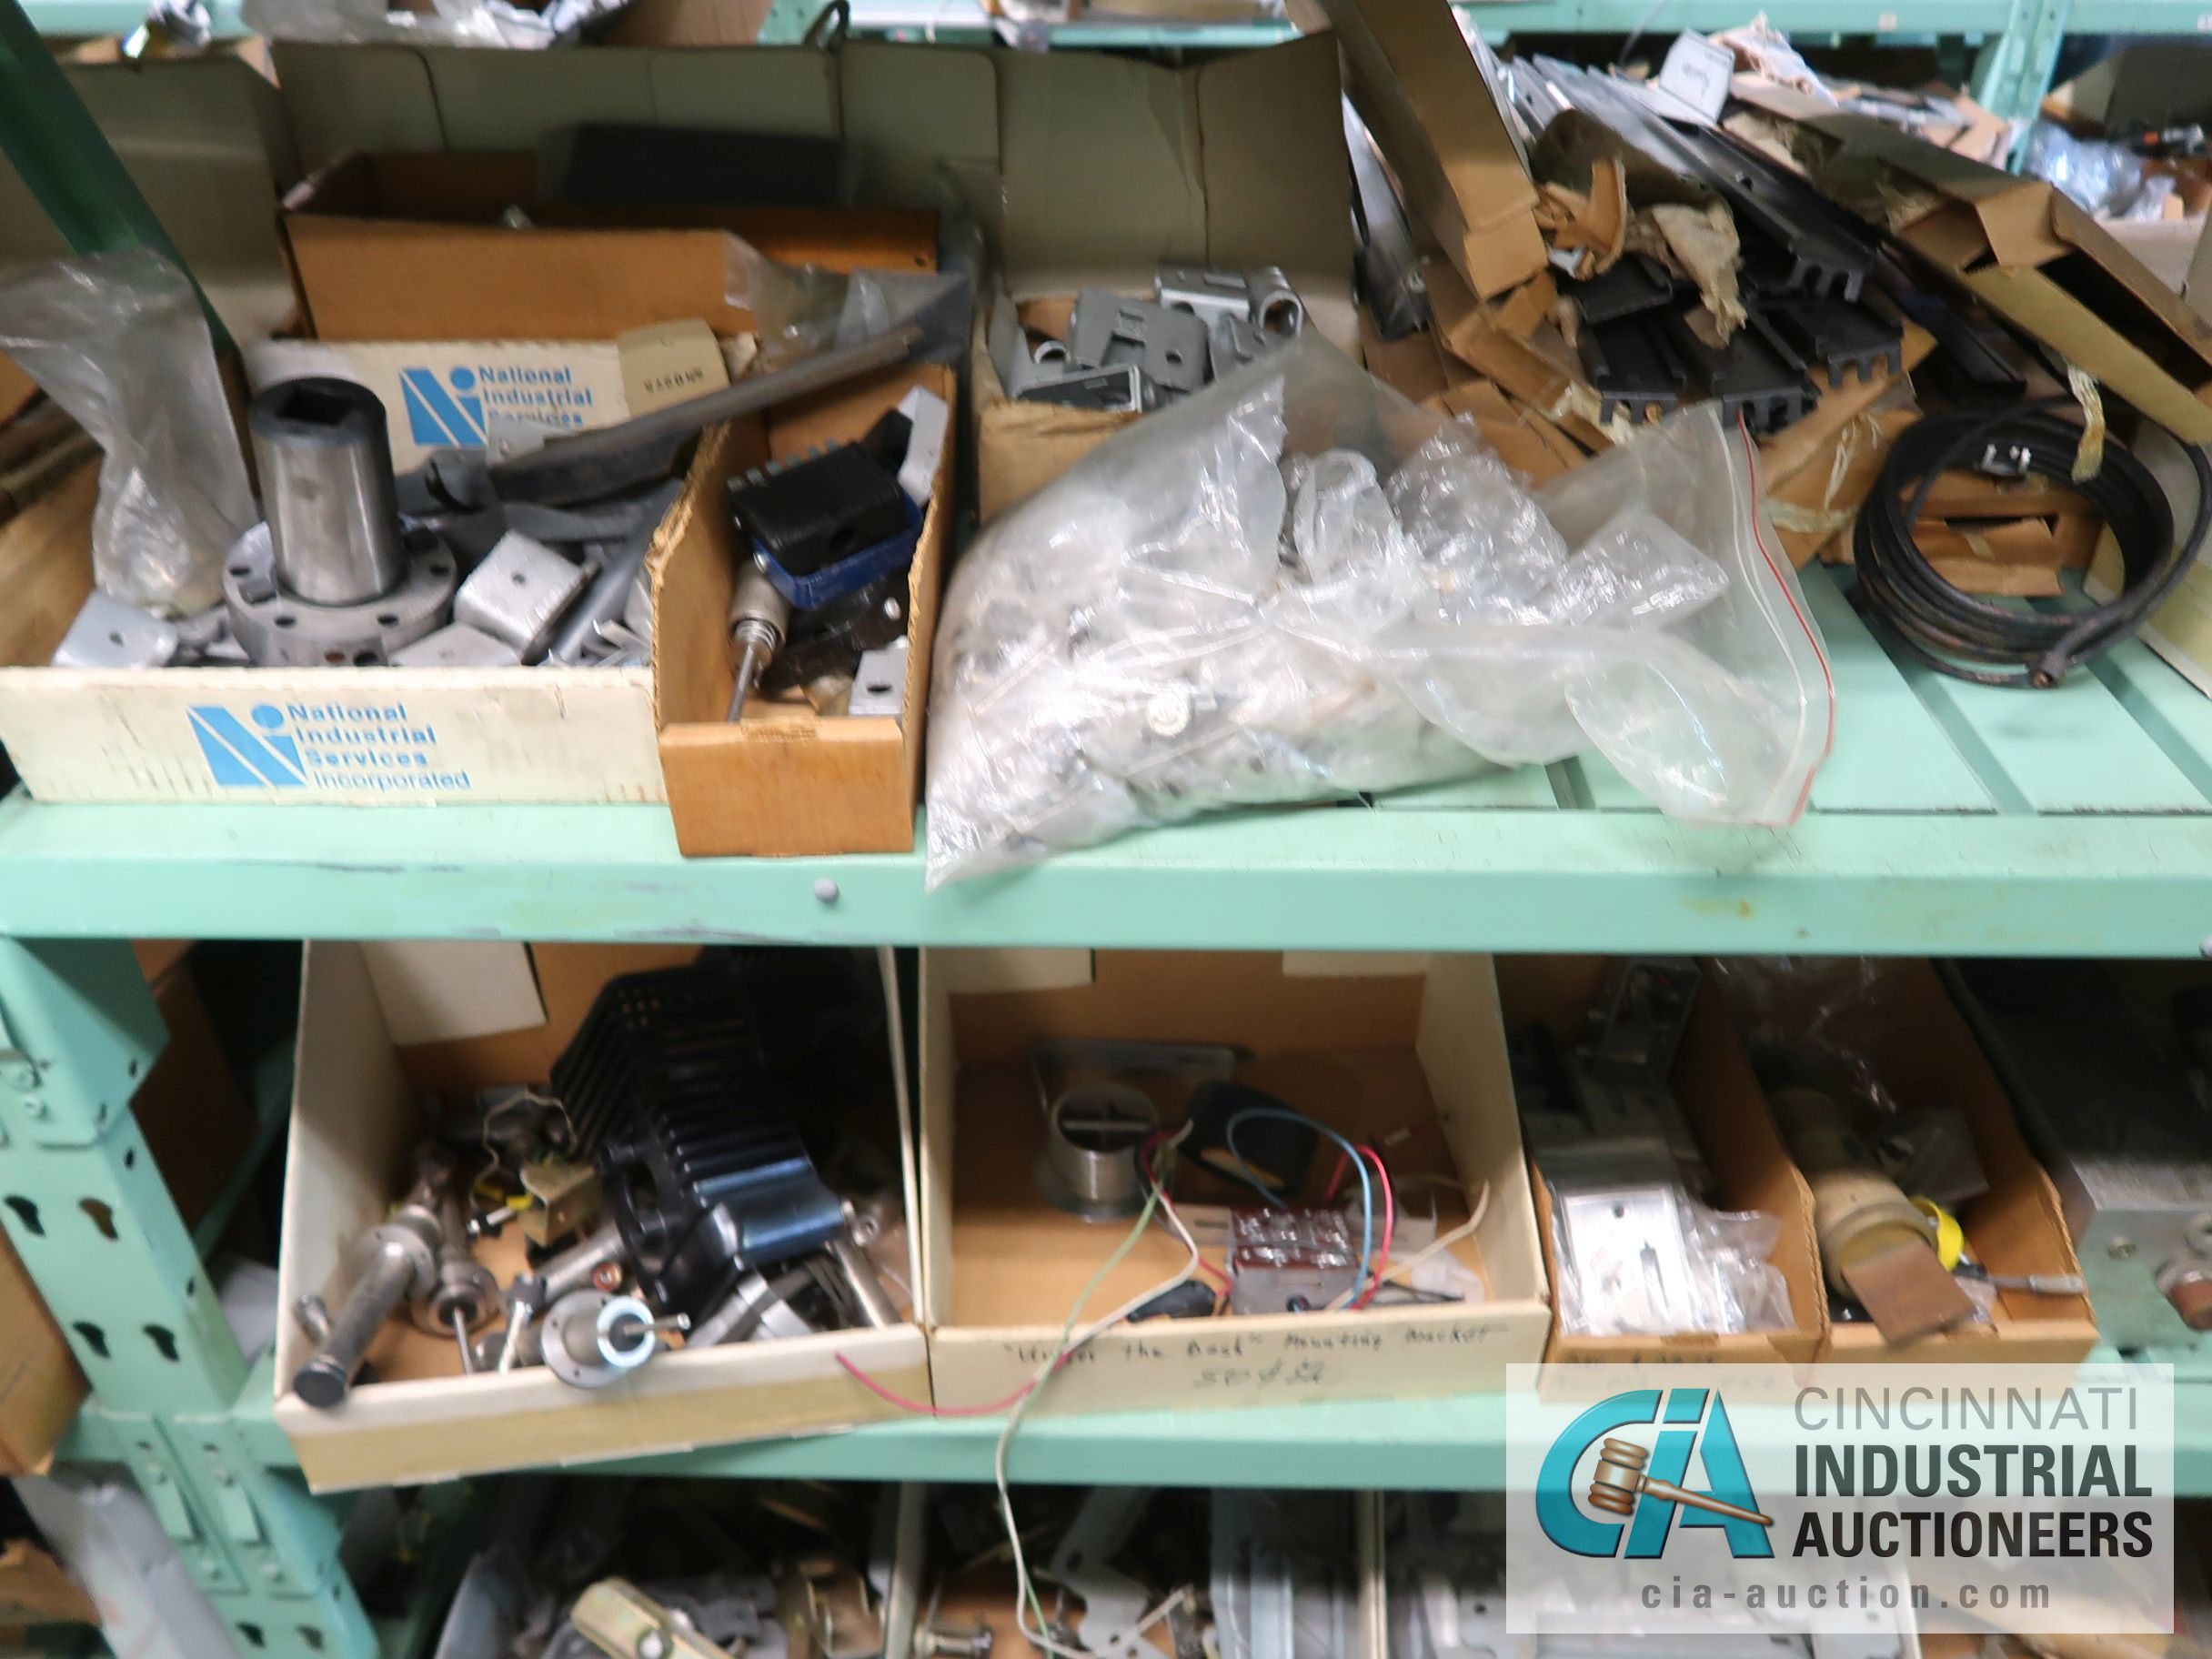 CONTENTS OF (6) RACKS INCLUDING MISCELLANEOUS AUTOMOTIVE PARTS, BREAKS, ROTORS, GASKETS, MOUNTING - Image 32 of 38